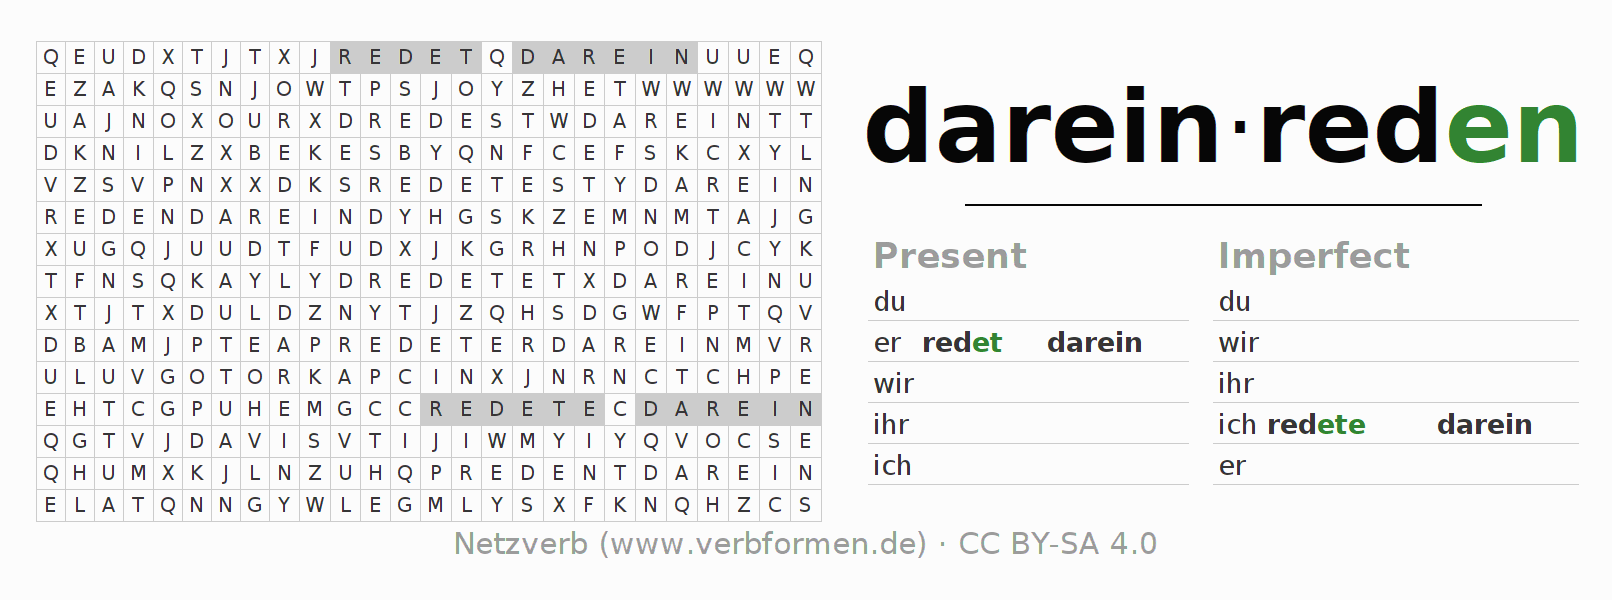 Word search puzzle for the conjugation of the verb dareinreden